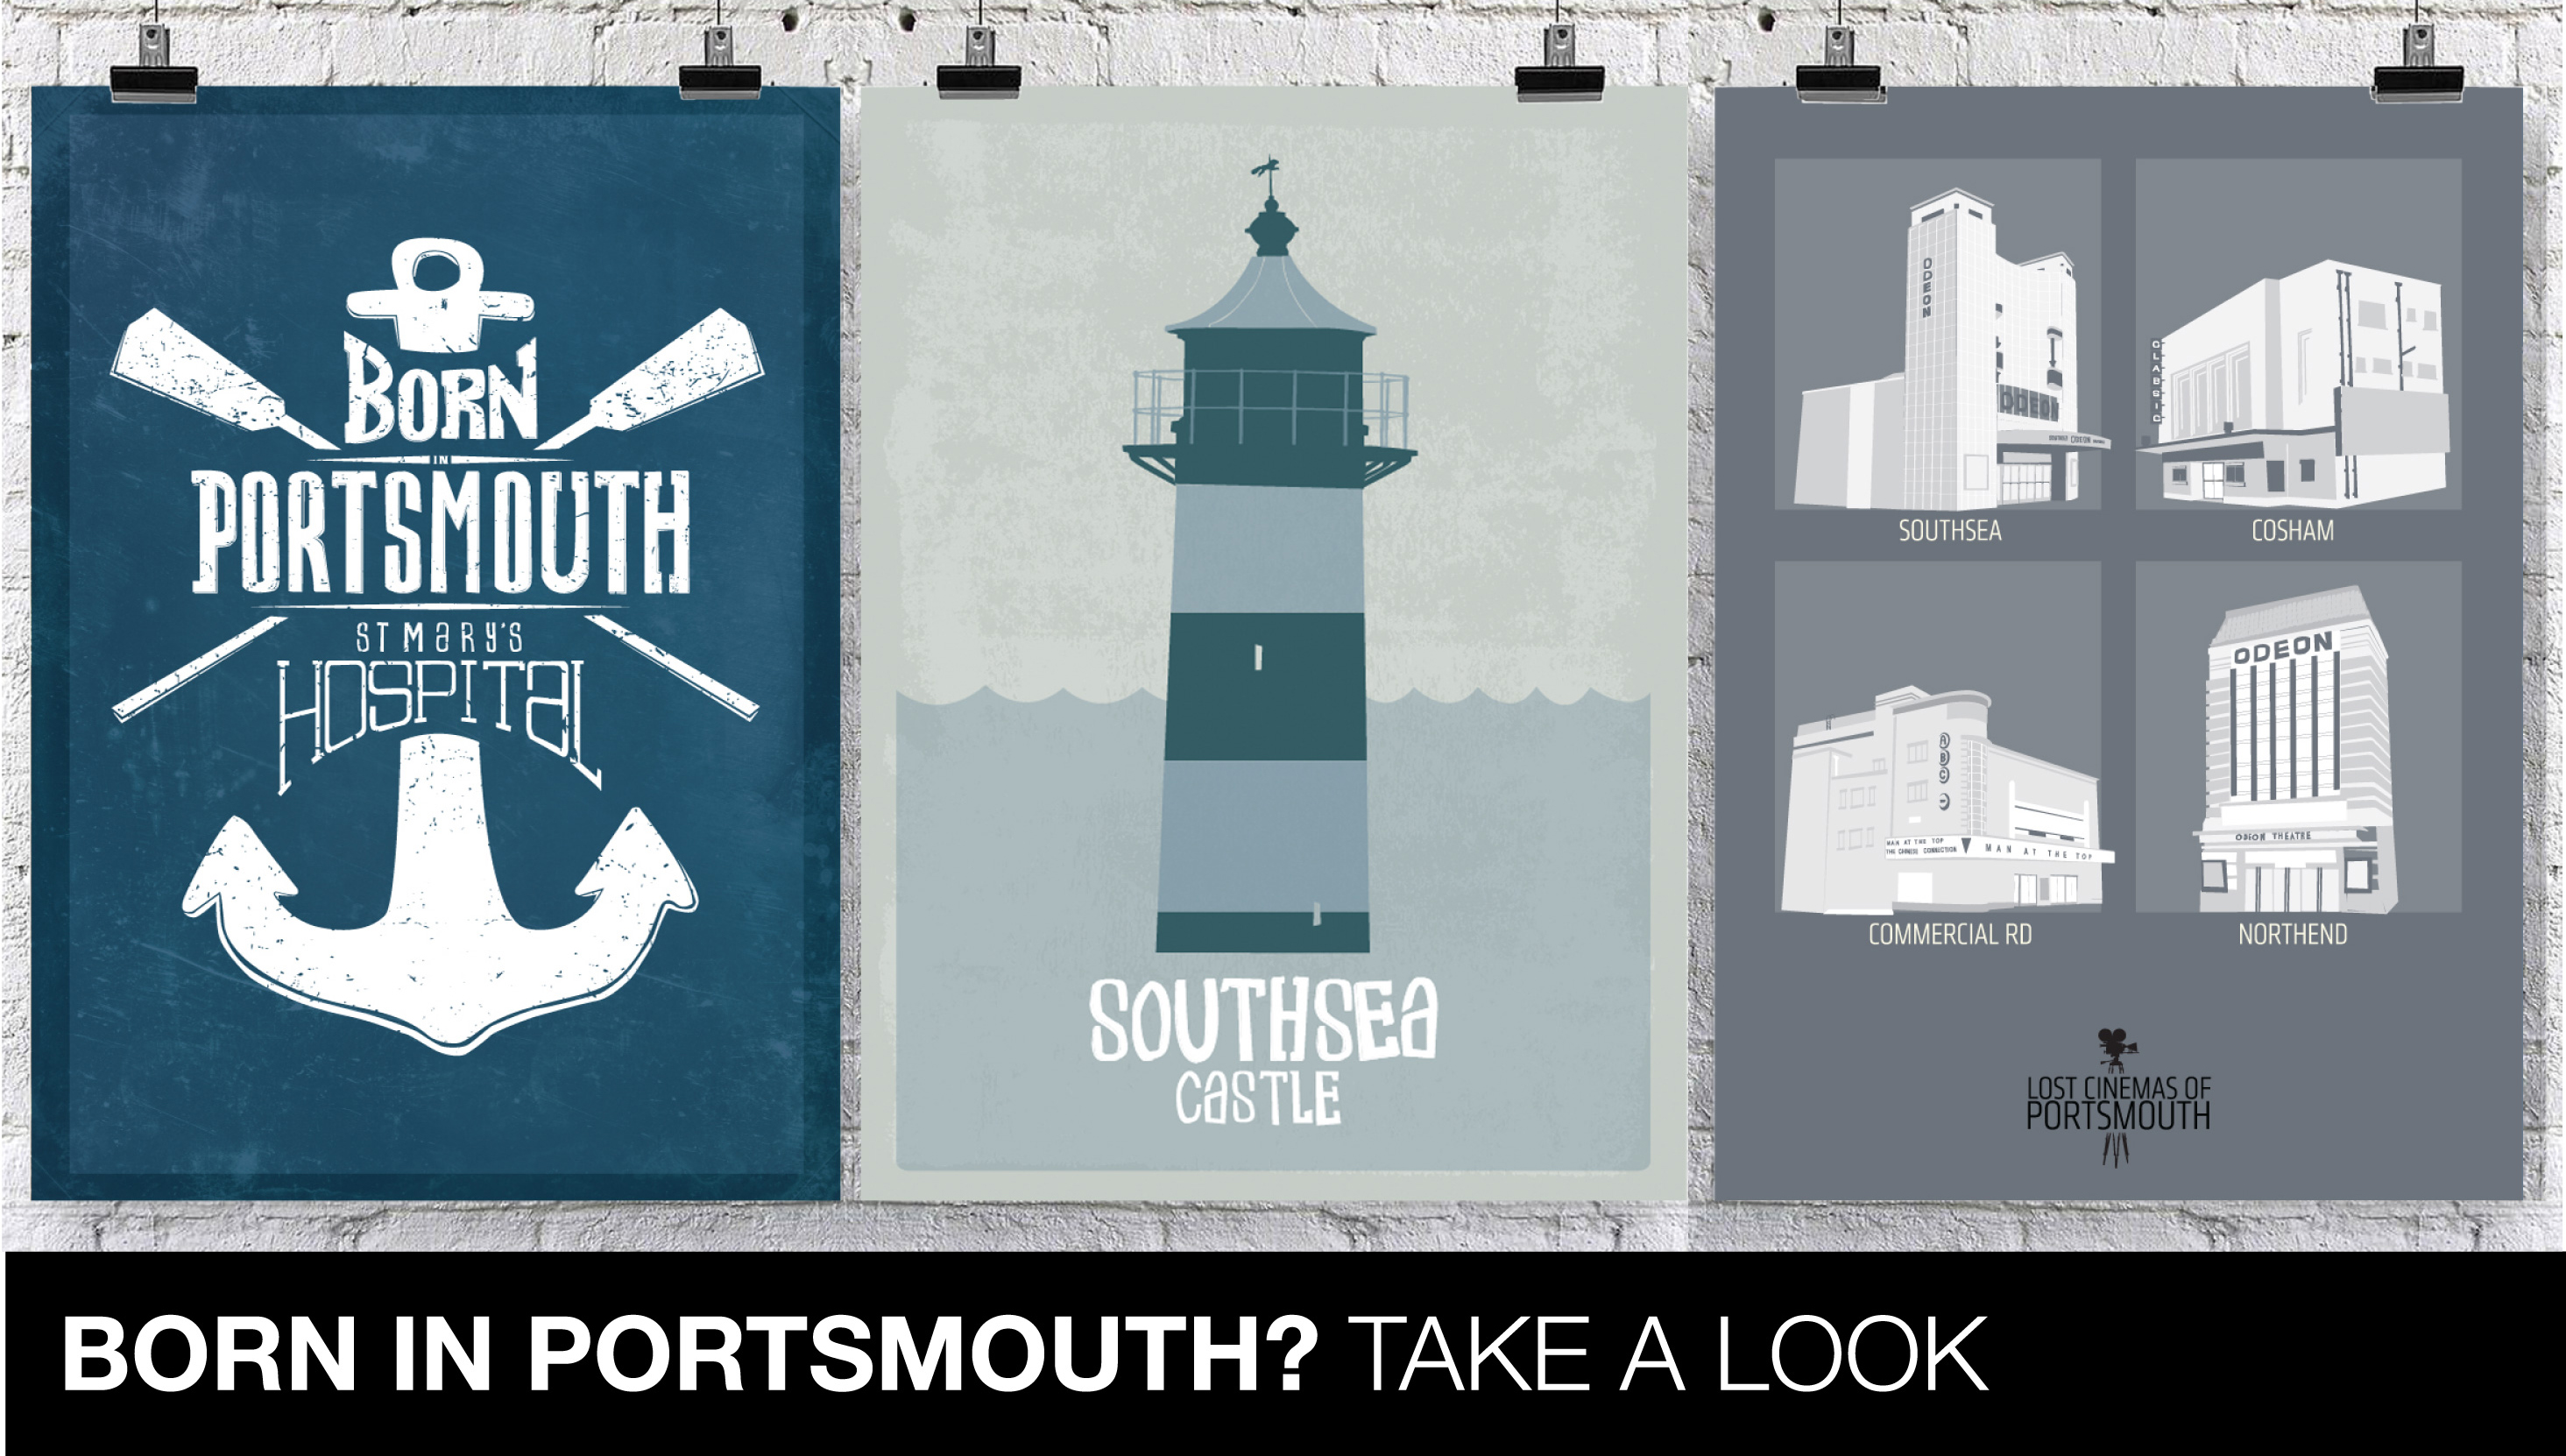 Born in Portsmouth